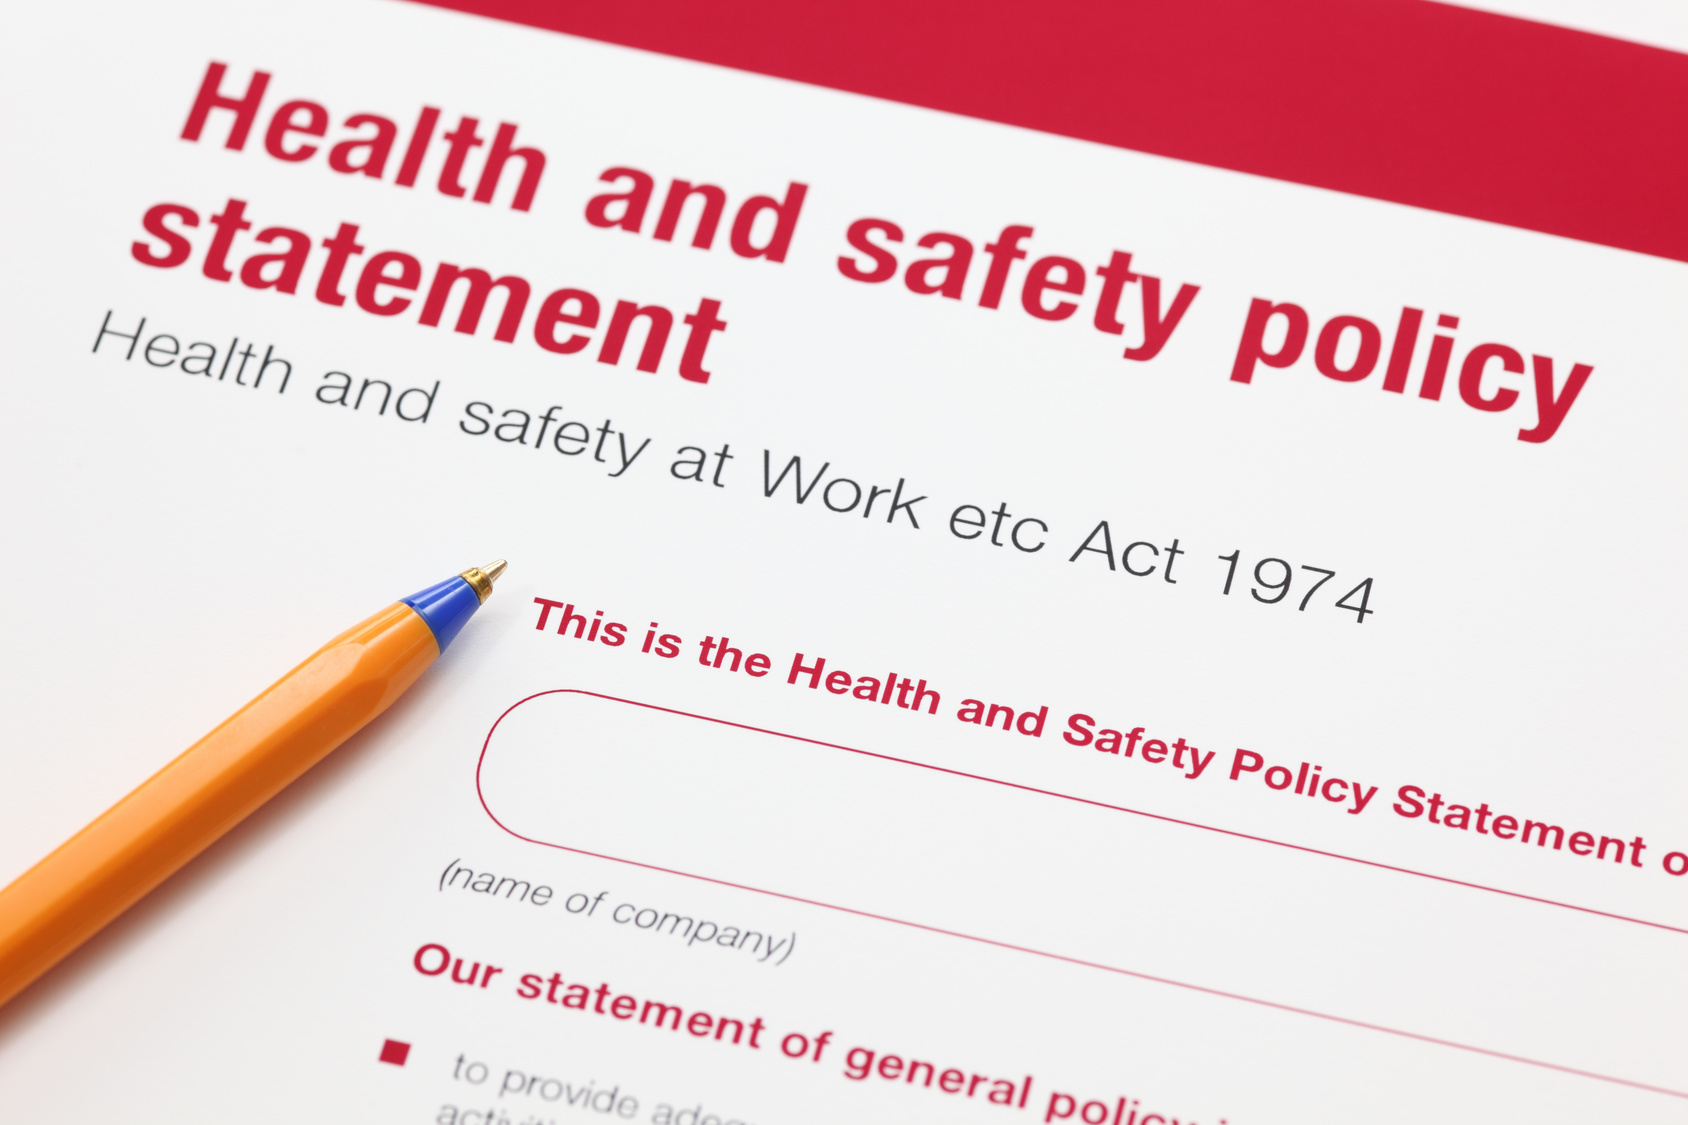 Safety Advisory Services of Dumfries helps businesses throughout Scotland to develop health & safety policies